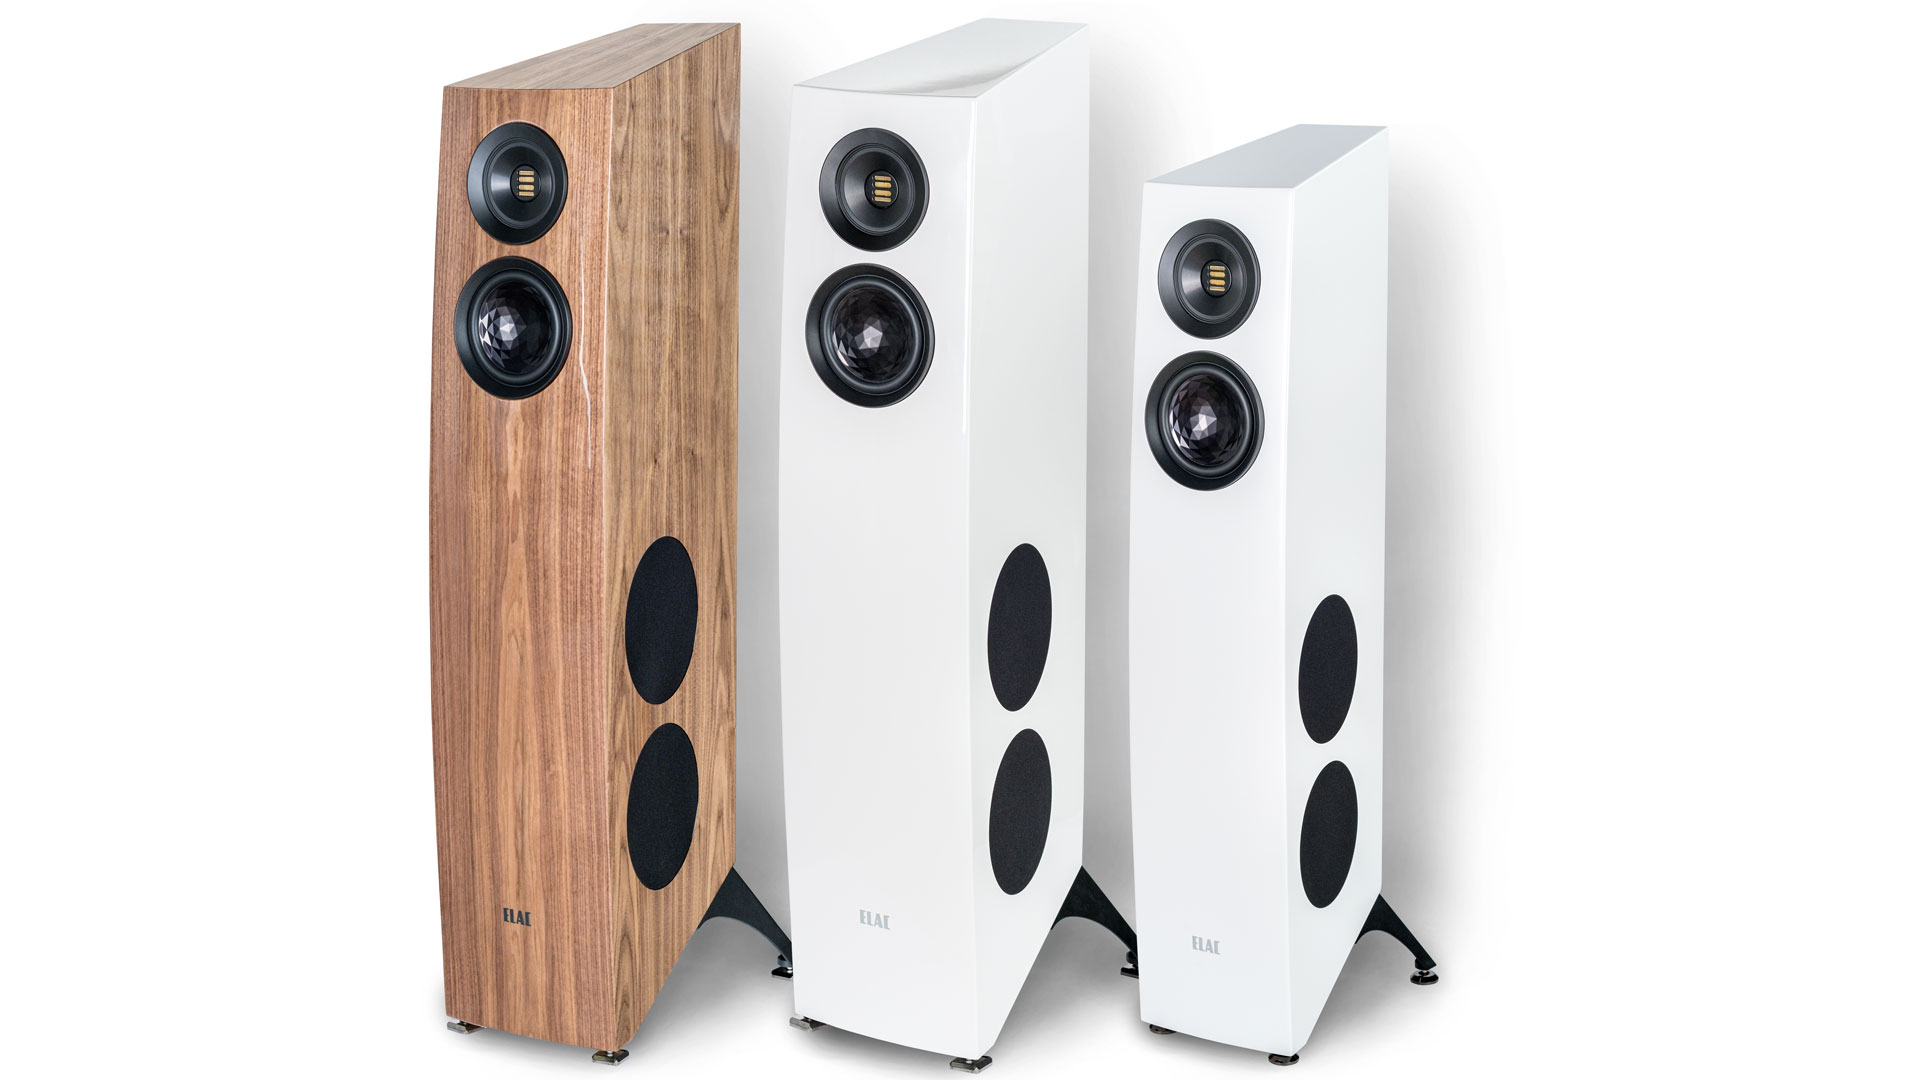 Elac Concentro S 509 and S 507 (Image Credit: Elac)